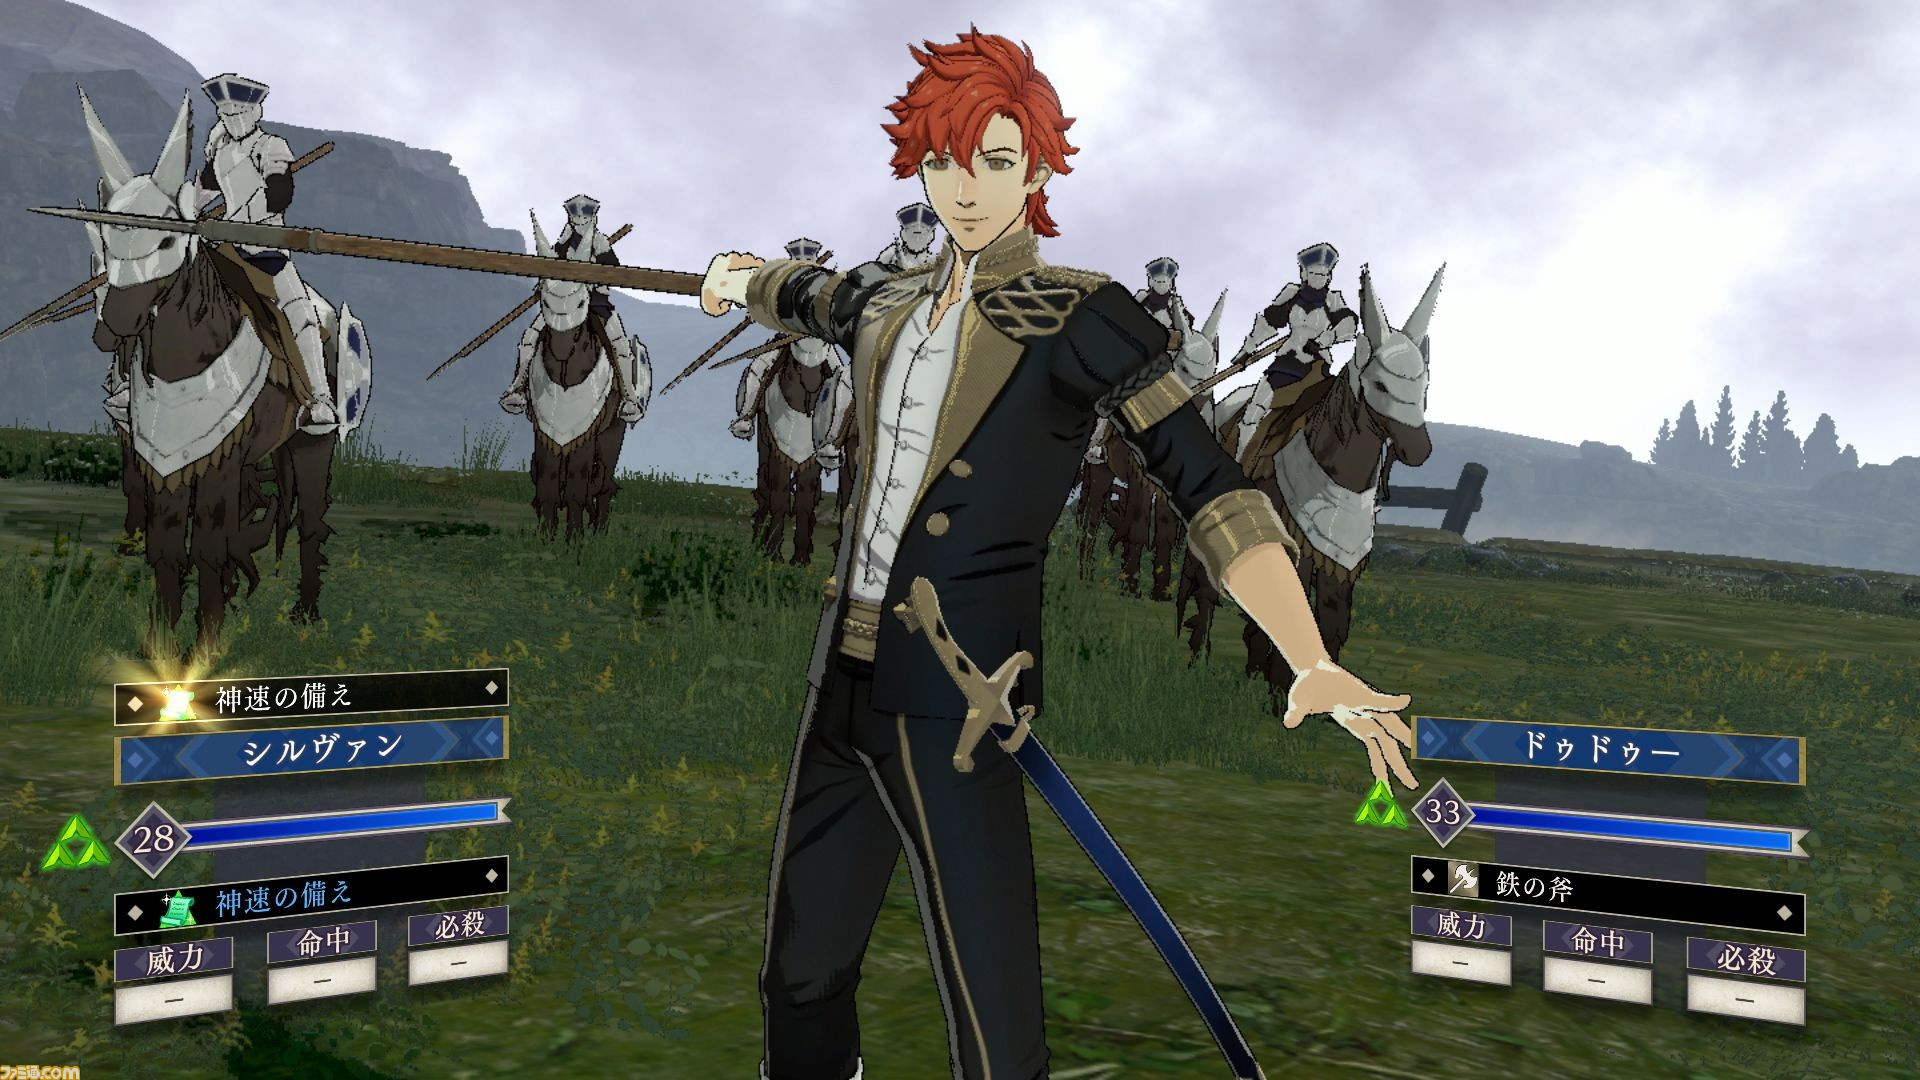 https://www.perfectly-nintendo.com/wp-content/uploads/sites/1/nggallery/fire-emblem-three-houses-15-05-2019/31.jpg